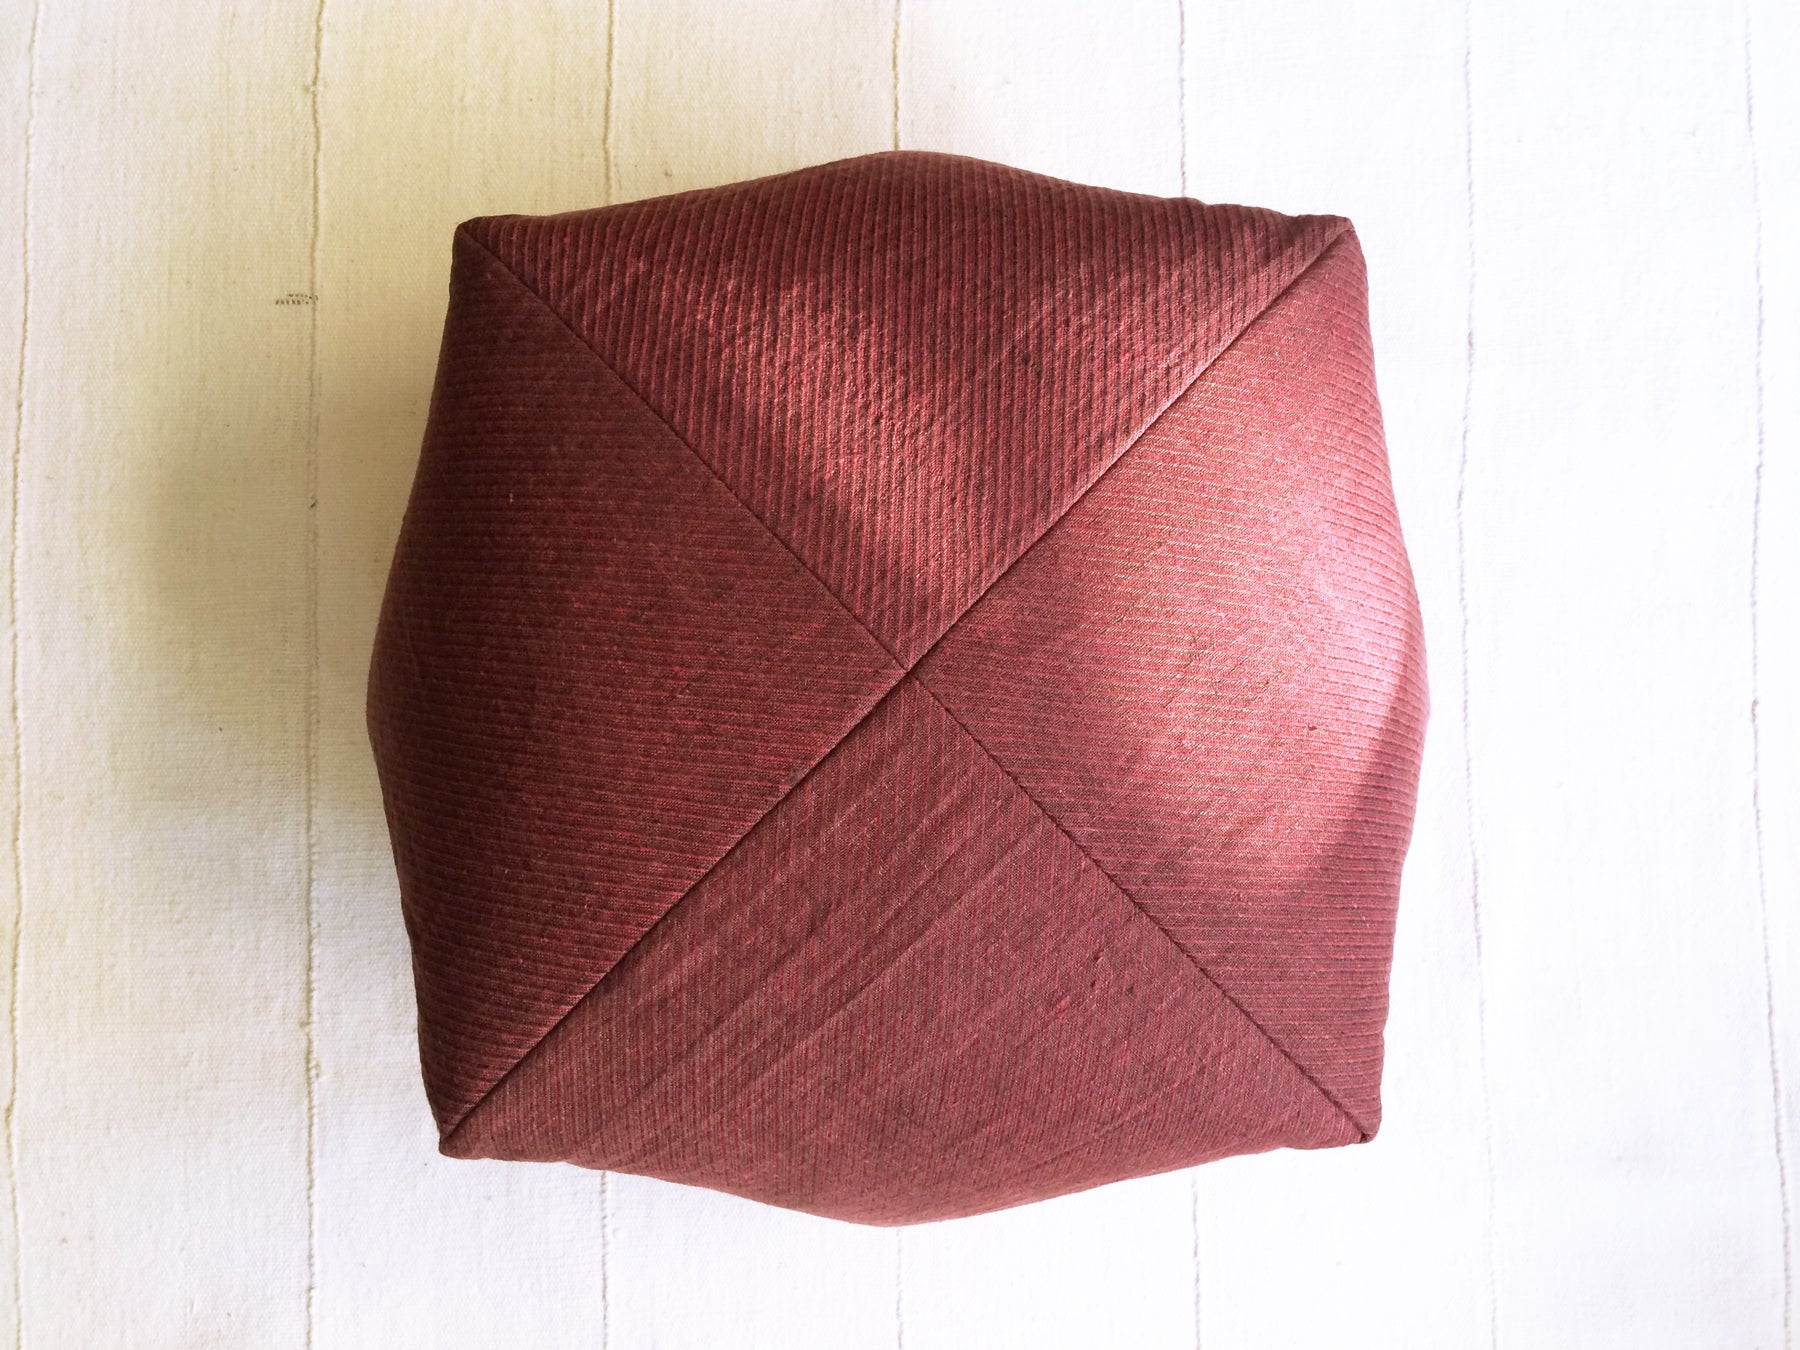 Garnet and Chocolate Herringbone Dumpling Cushion